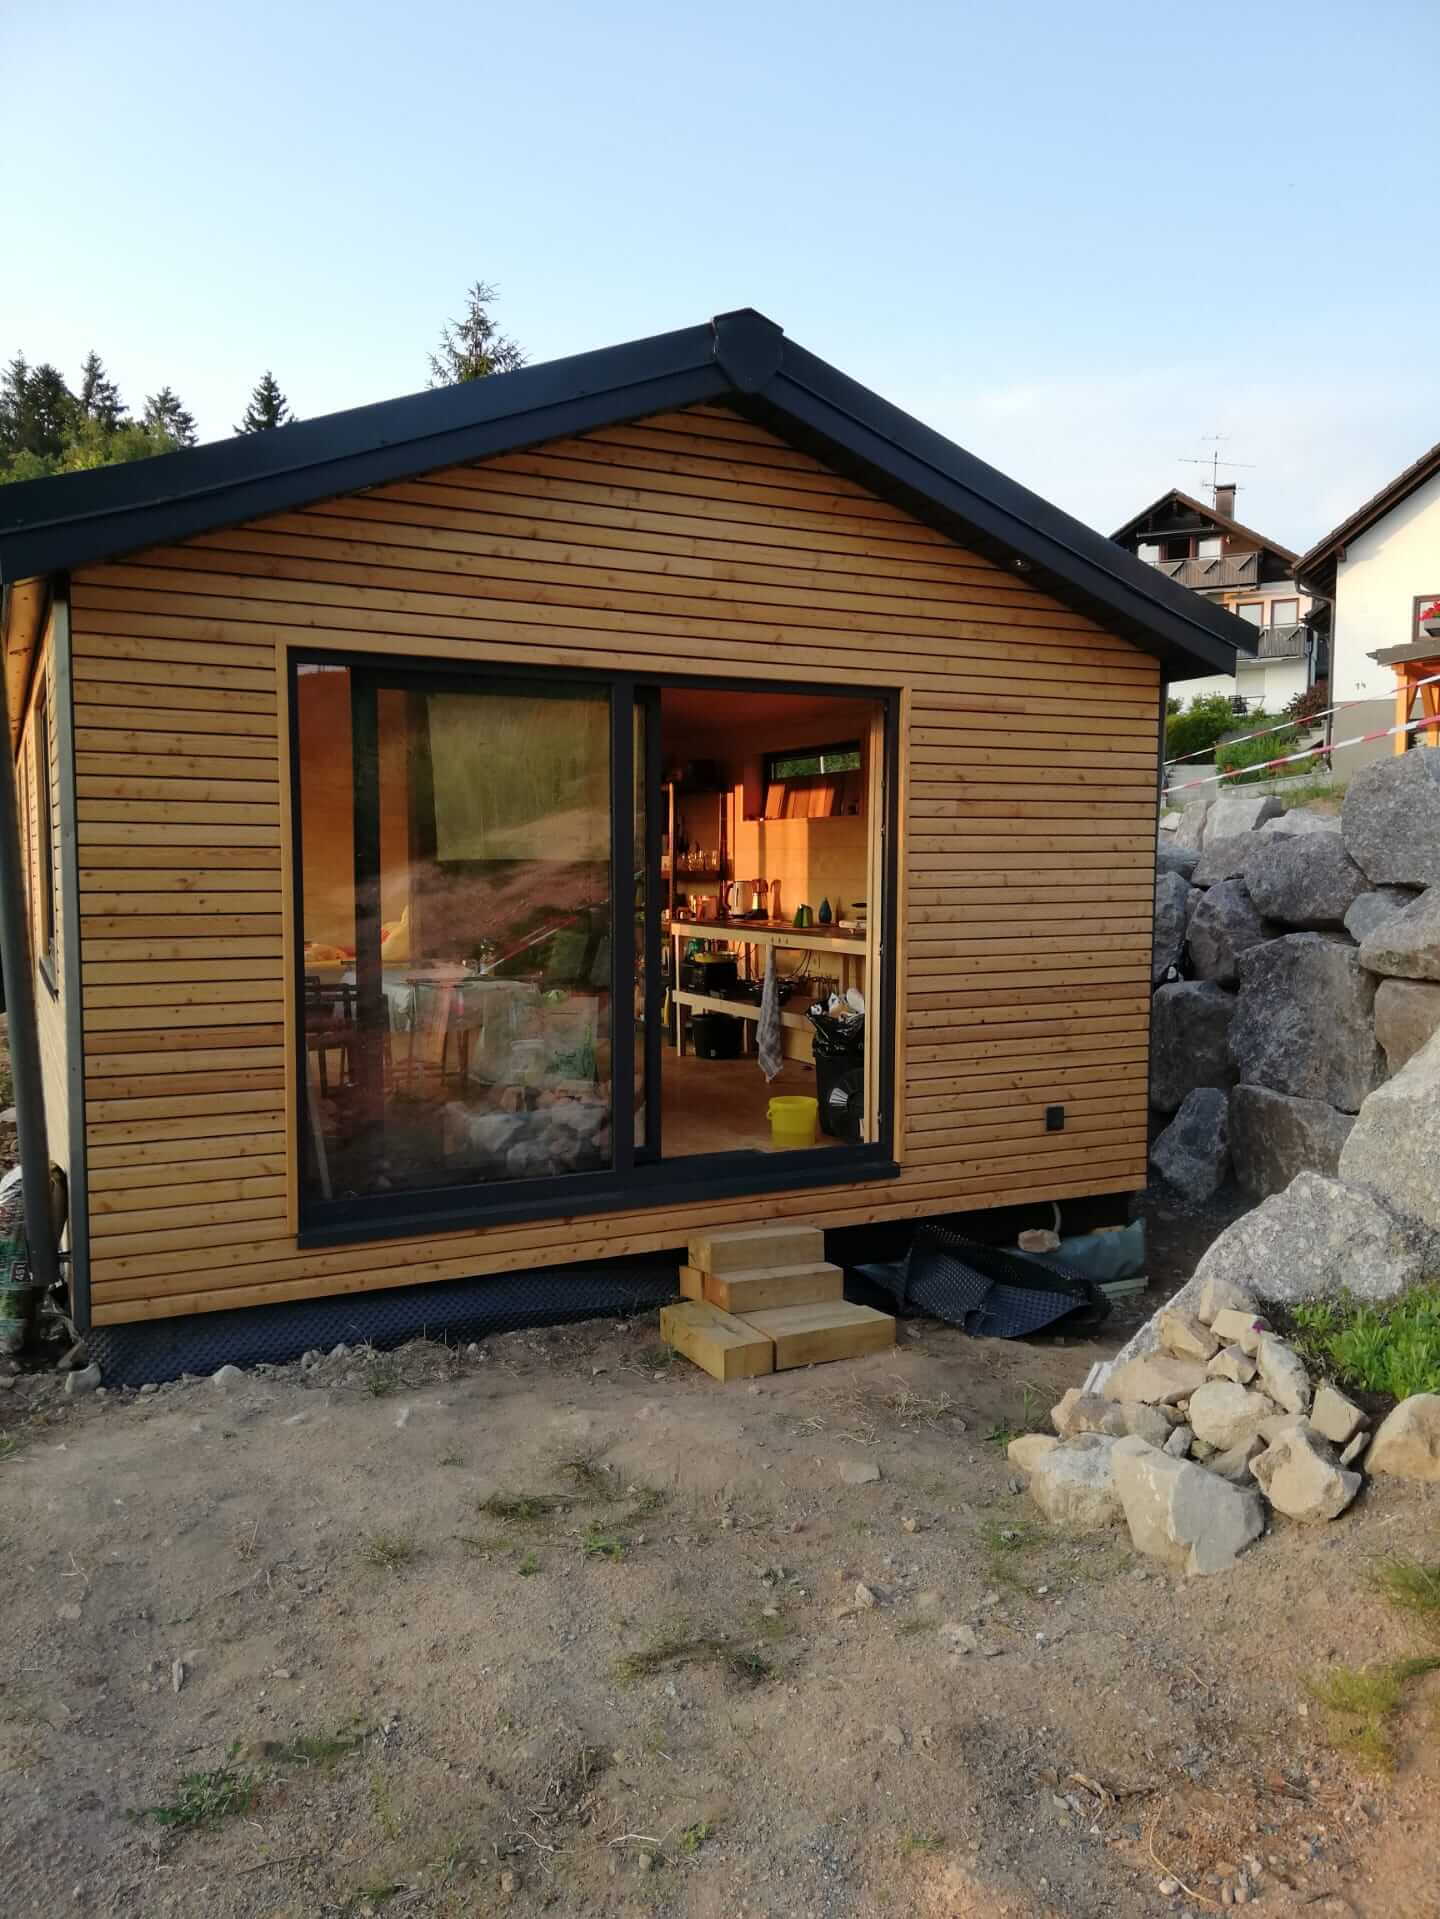 mobiles-chalet-canada-mobiles-tiny-house-gebautes-canada-18